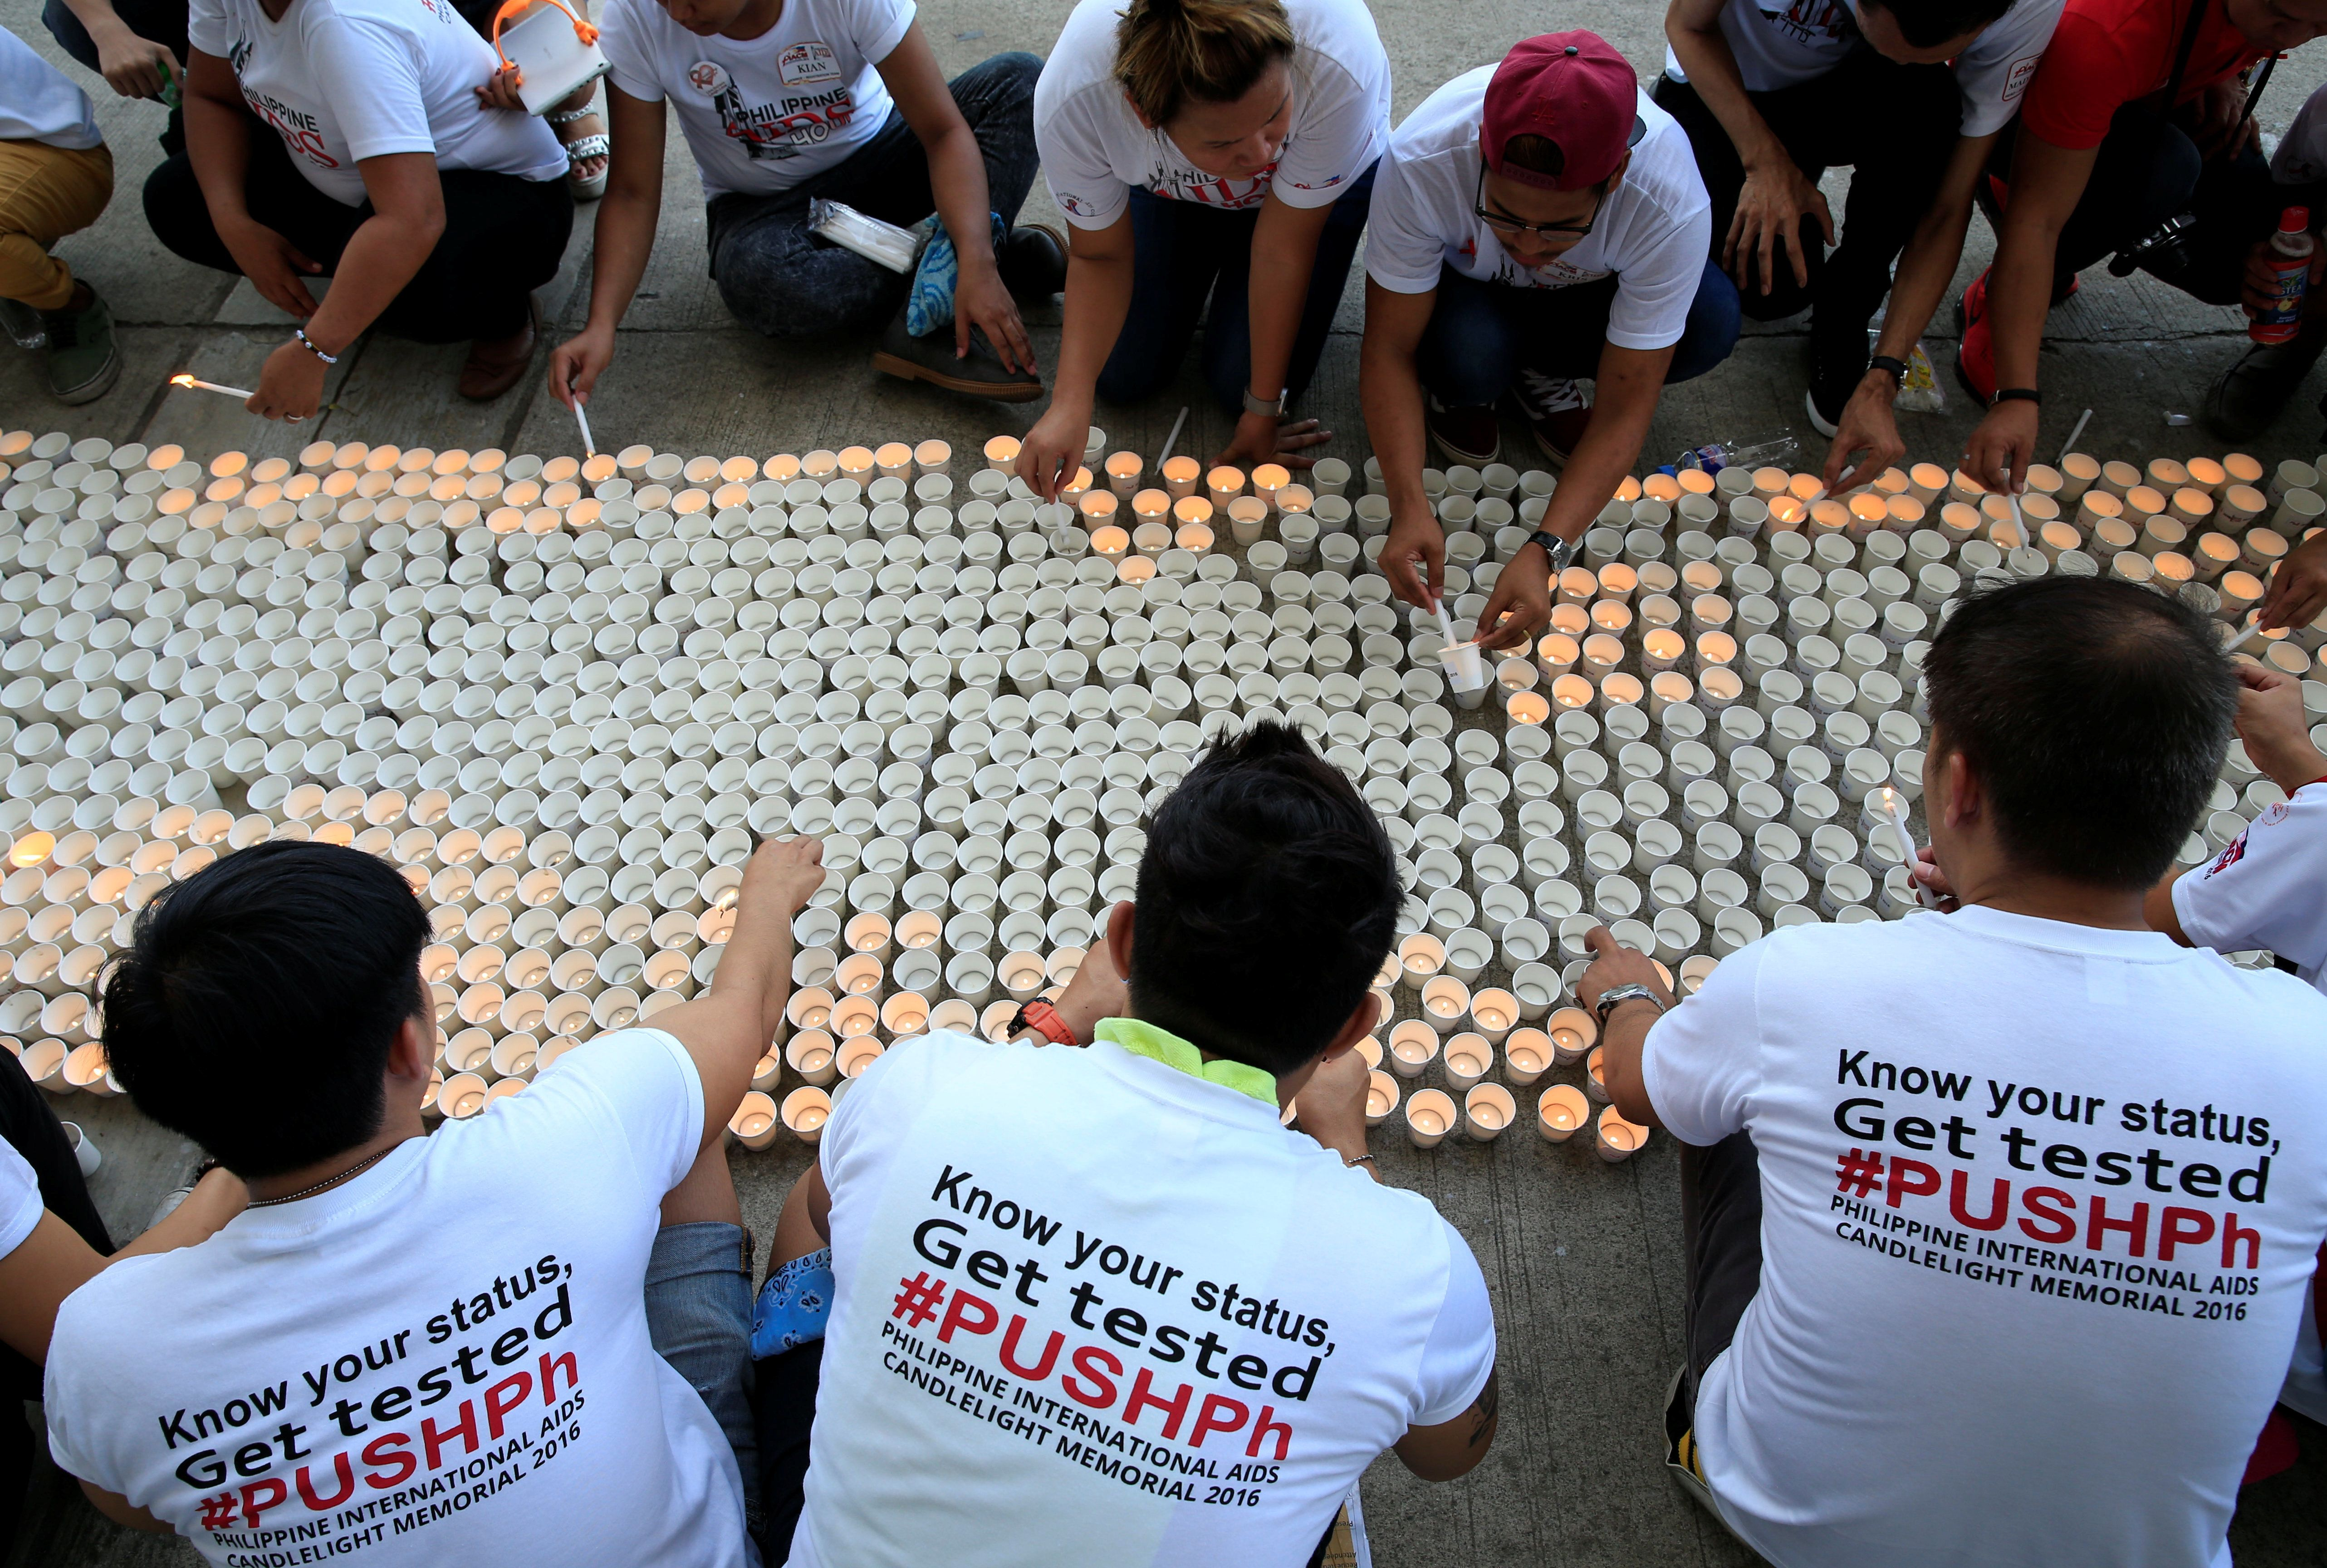 Campaign supporters lights on around 1,638 candles representing the number of dead victims claimed by HIV/AIDS in the Philippines since 1984 as part of their commemoration of International AIDS Candlelight Memorial Day in Quezon city, metro Manila in the Philippines May 14, 2016. REUTERS/Romeo Ranoco